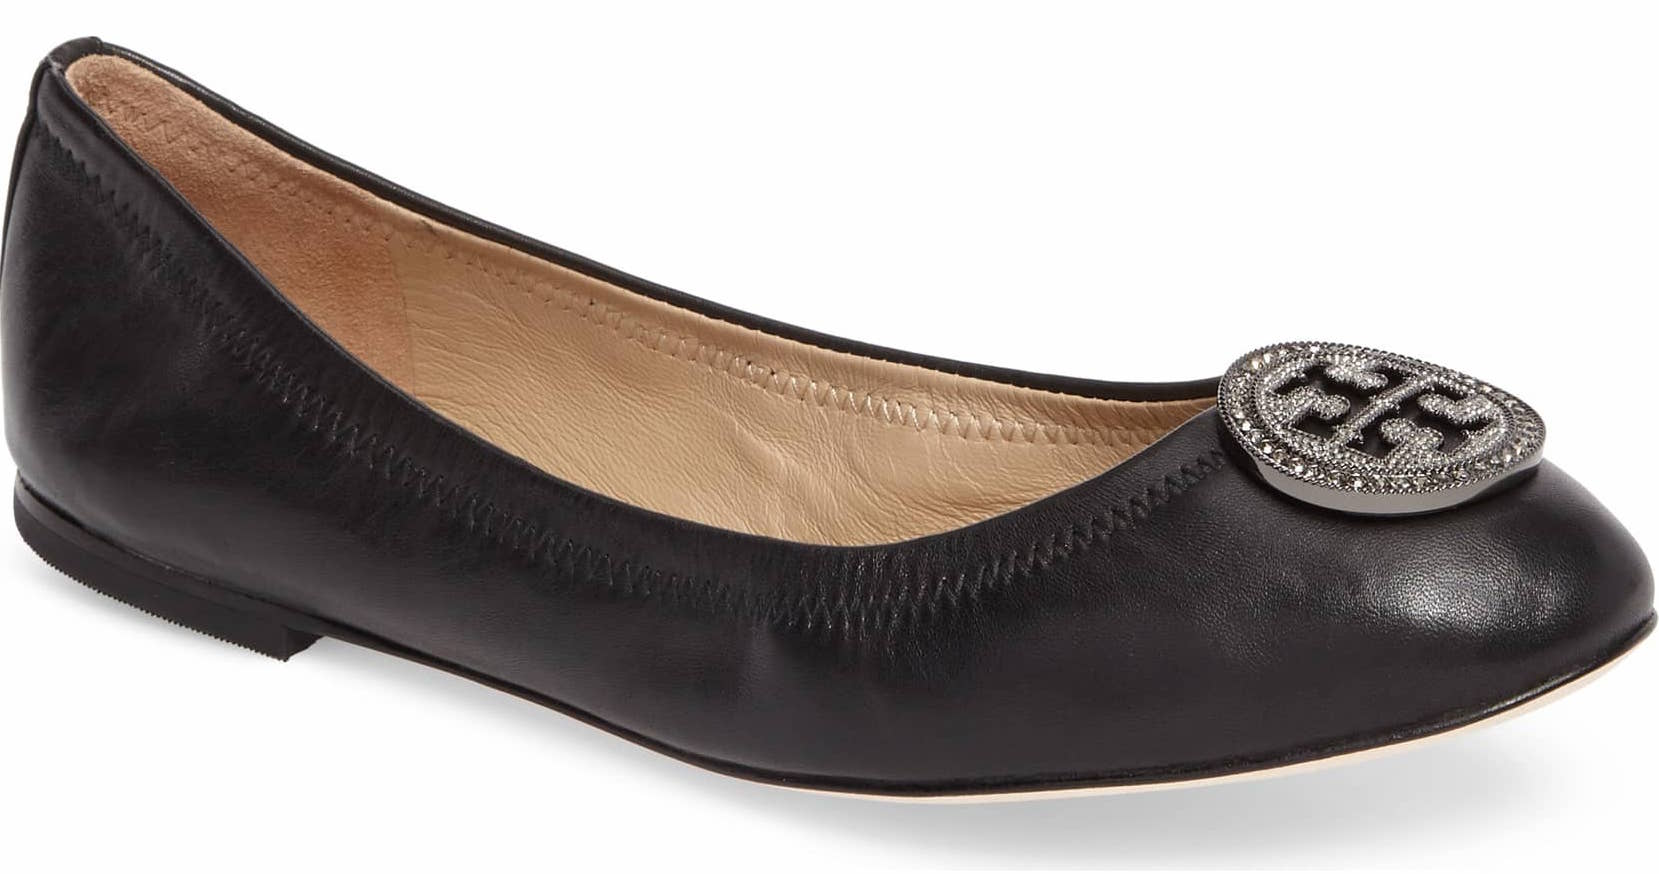 d1f89b308d0ee0 Tory Burch Ballet Flats In Every Color Are on Sale at Nordstrom